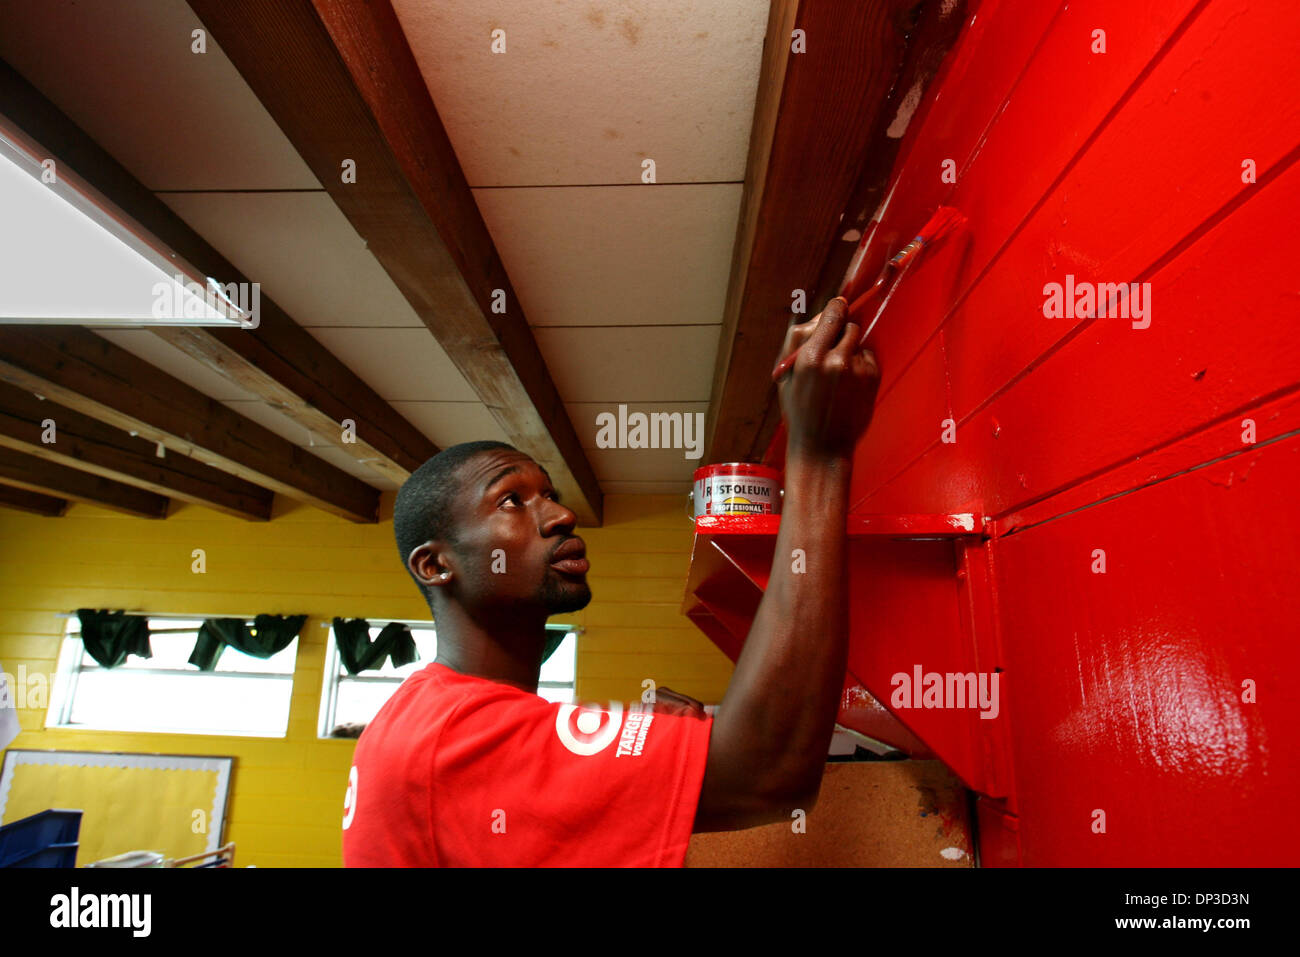 Jun 29, 2006; Palm Springs, FL, USA; Target employee Ulysses Anderson, 26, of West Palm Beach, volunteers at 'the day of giving back to the community' painting a classroom at the YMCA of the Palm Beaches in Palm Springs Thursday. Around 35 employees from Target stores in northern Broward County and Palm Beach County volunteered painting, improving the landscape and donating toys. A - Stock Image